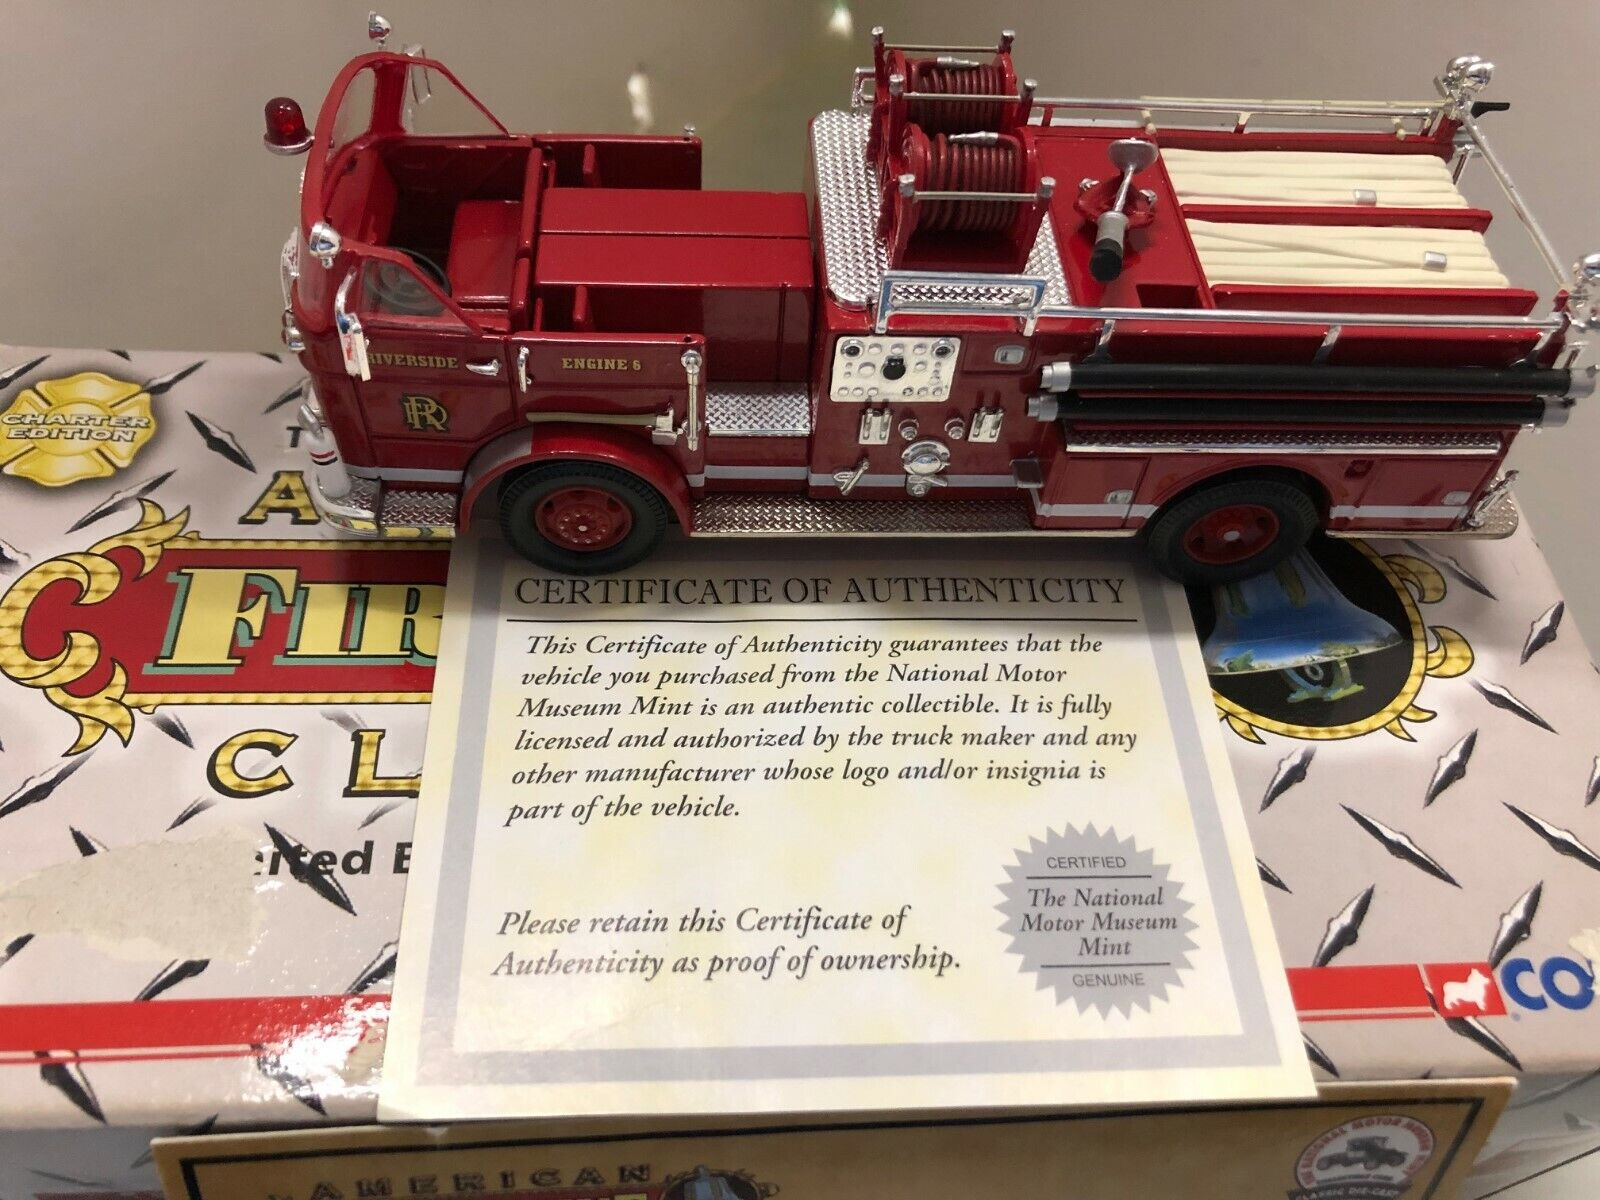 CORGI US50811 SEAGRAVE K RIVERSIDE FIRE DEPARTMENT